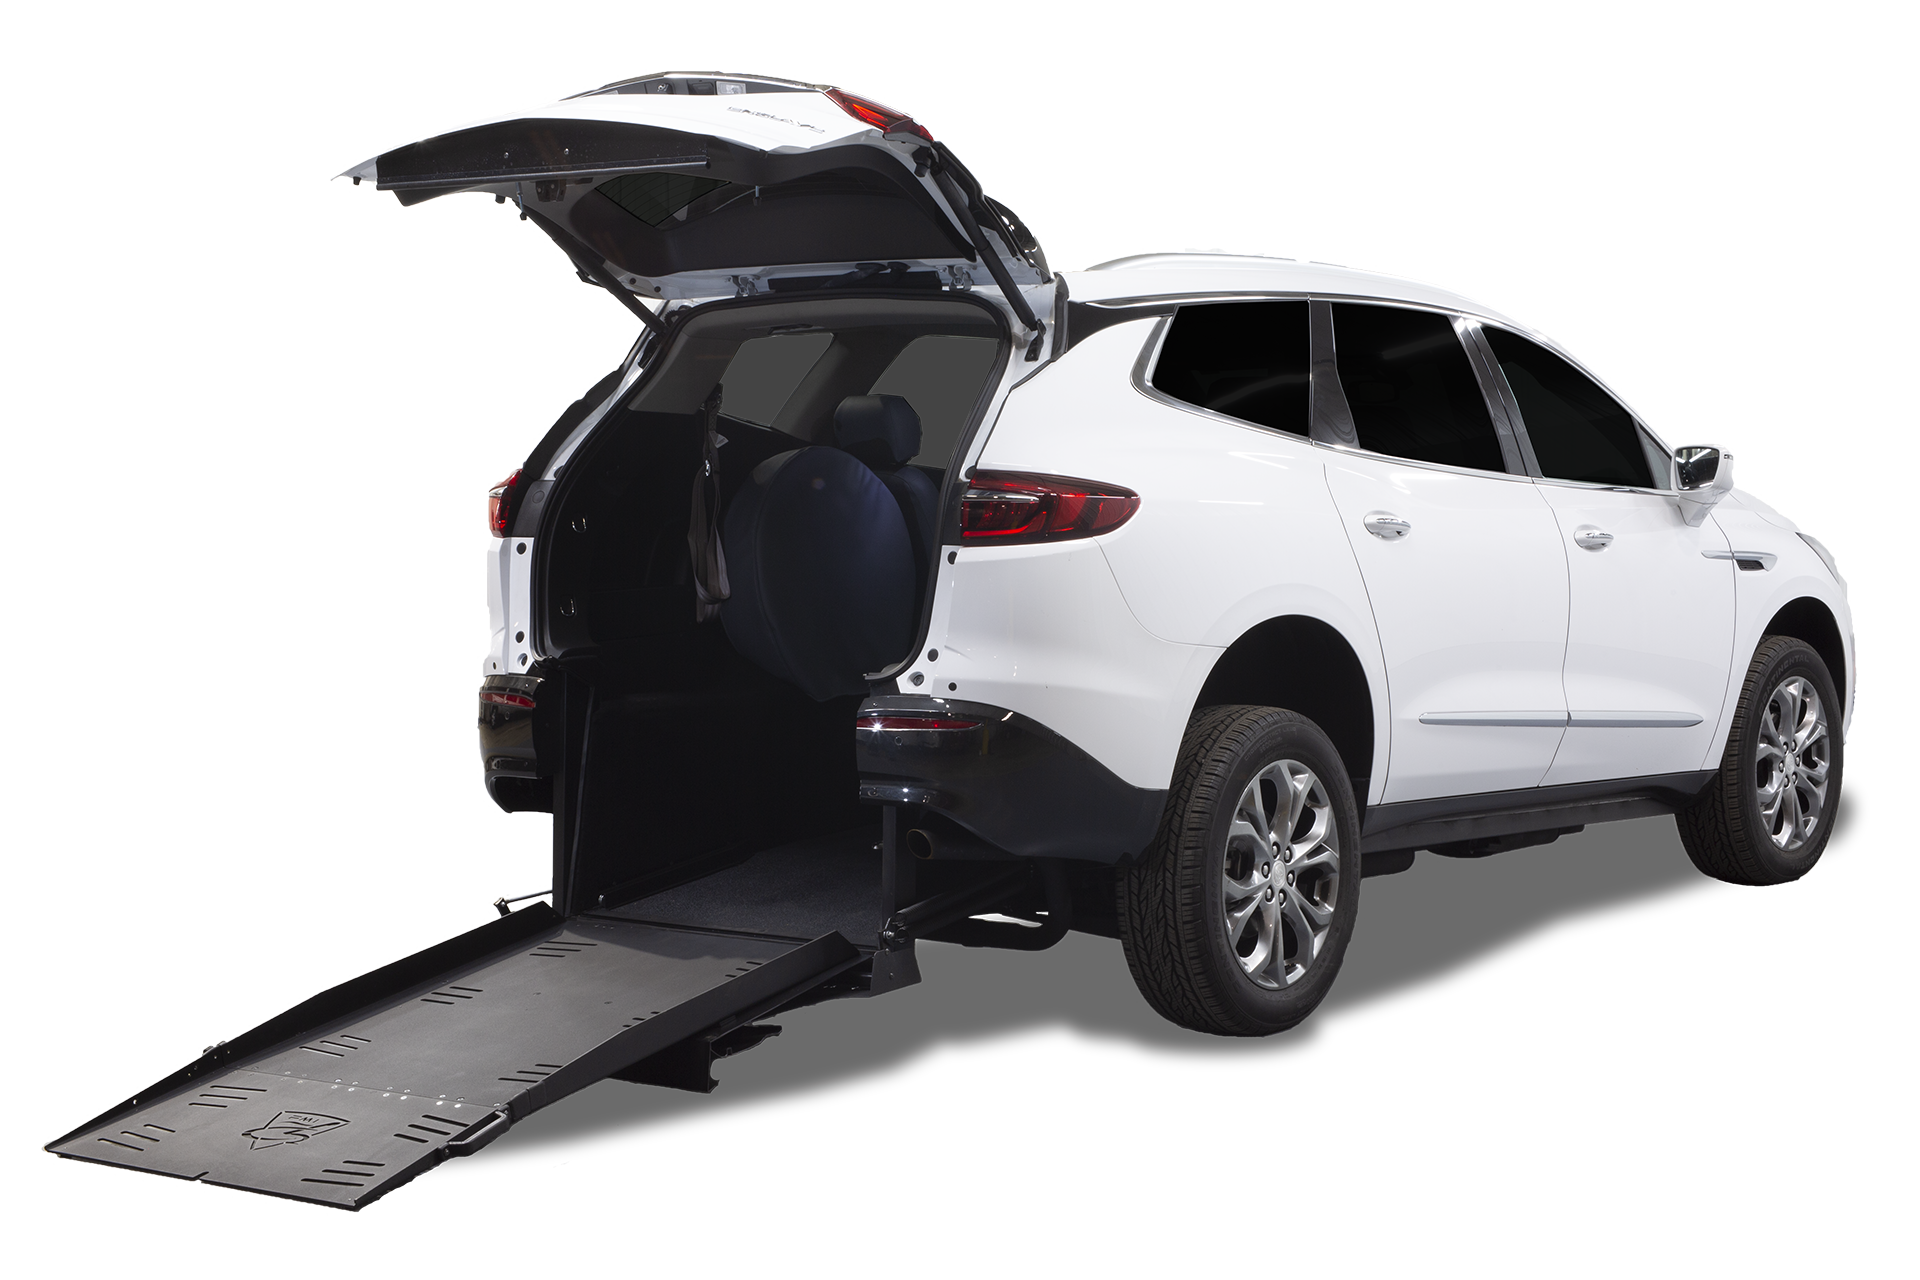 White Buick Enclave rear entry